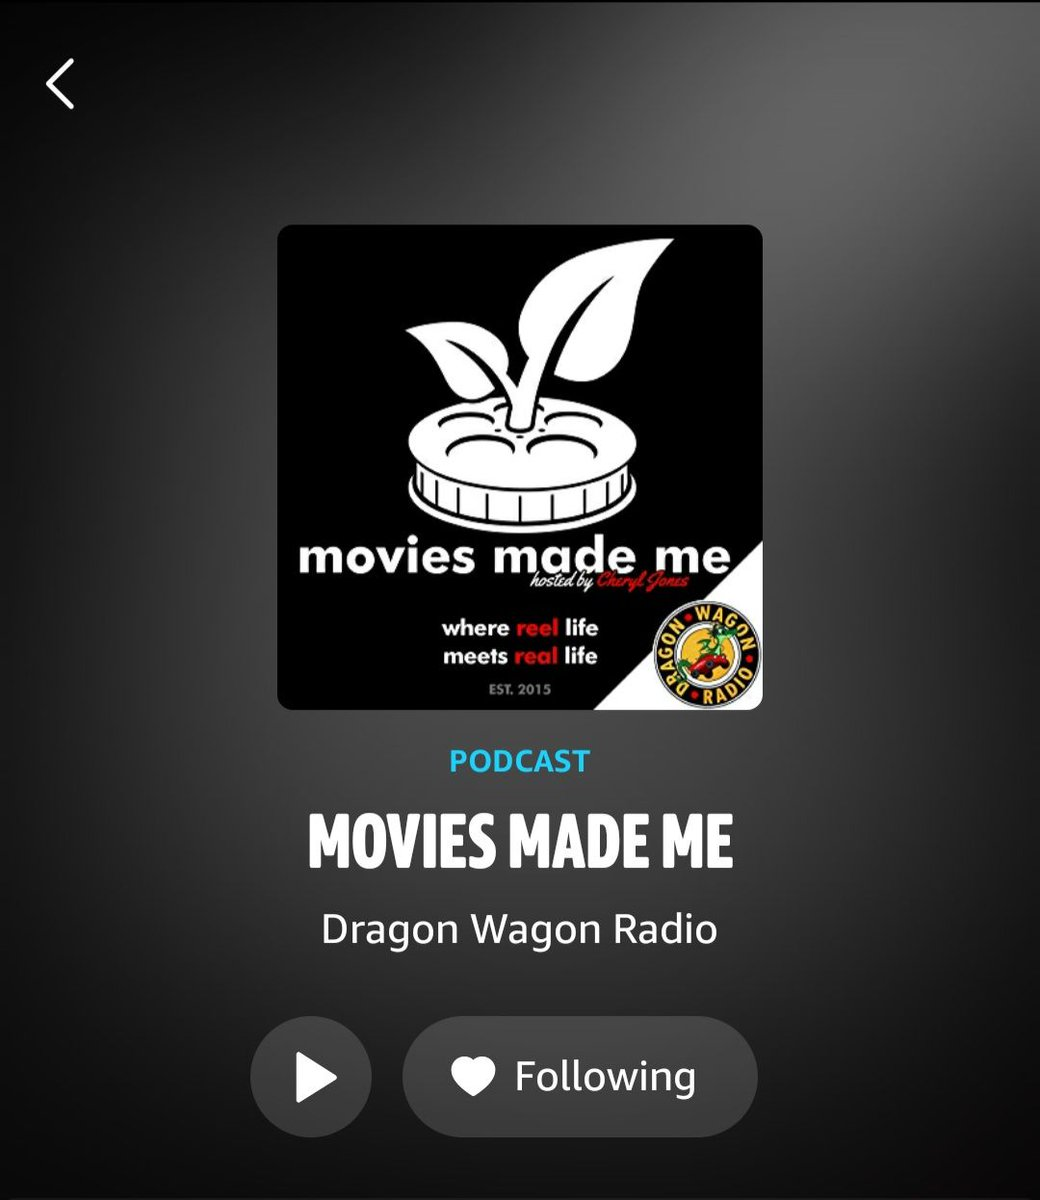 The entire run of Movies Made Me is now available on the @amazonmusic app! Listen again to your favorite episodes while I prepare to bring you the next evolution in conversations about the influence of pop culture on our lives with @mycorefourpod! #podcast #popculture #movies https://t.co/GxmRKZMQYf